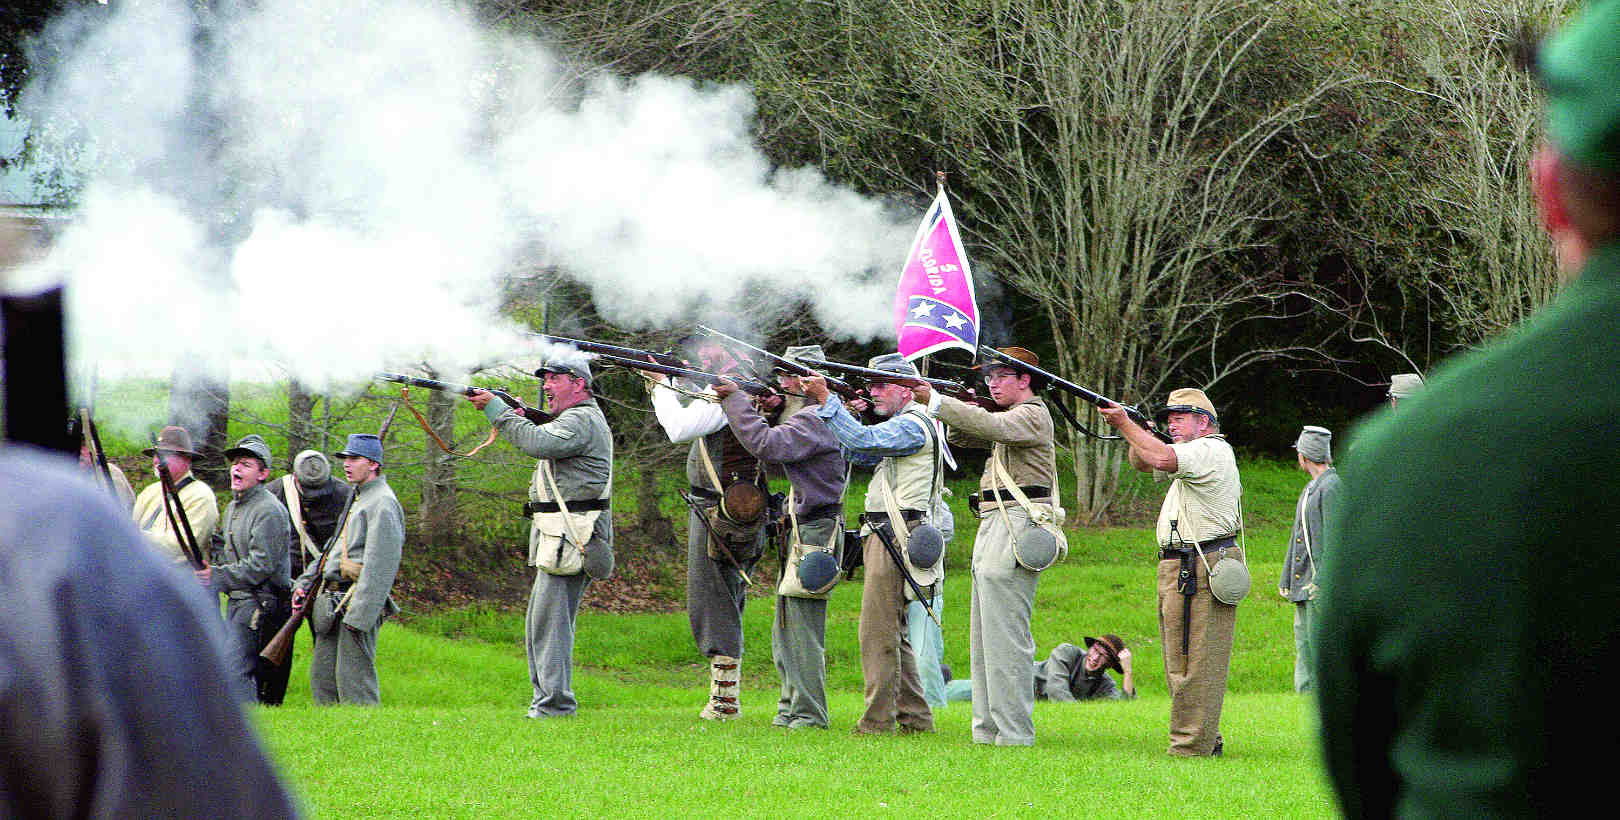 Civil War history comes to life at Pioneer Florida Museum